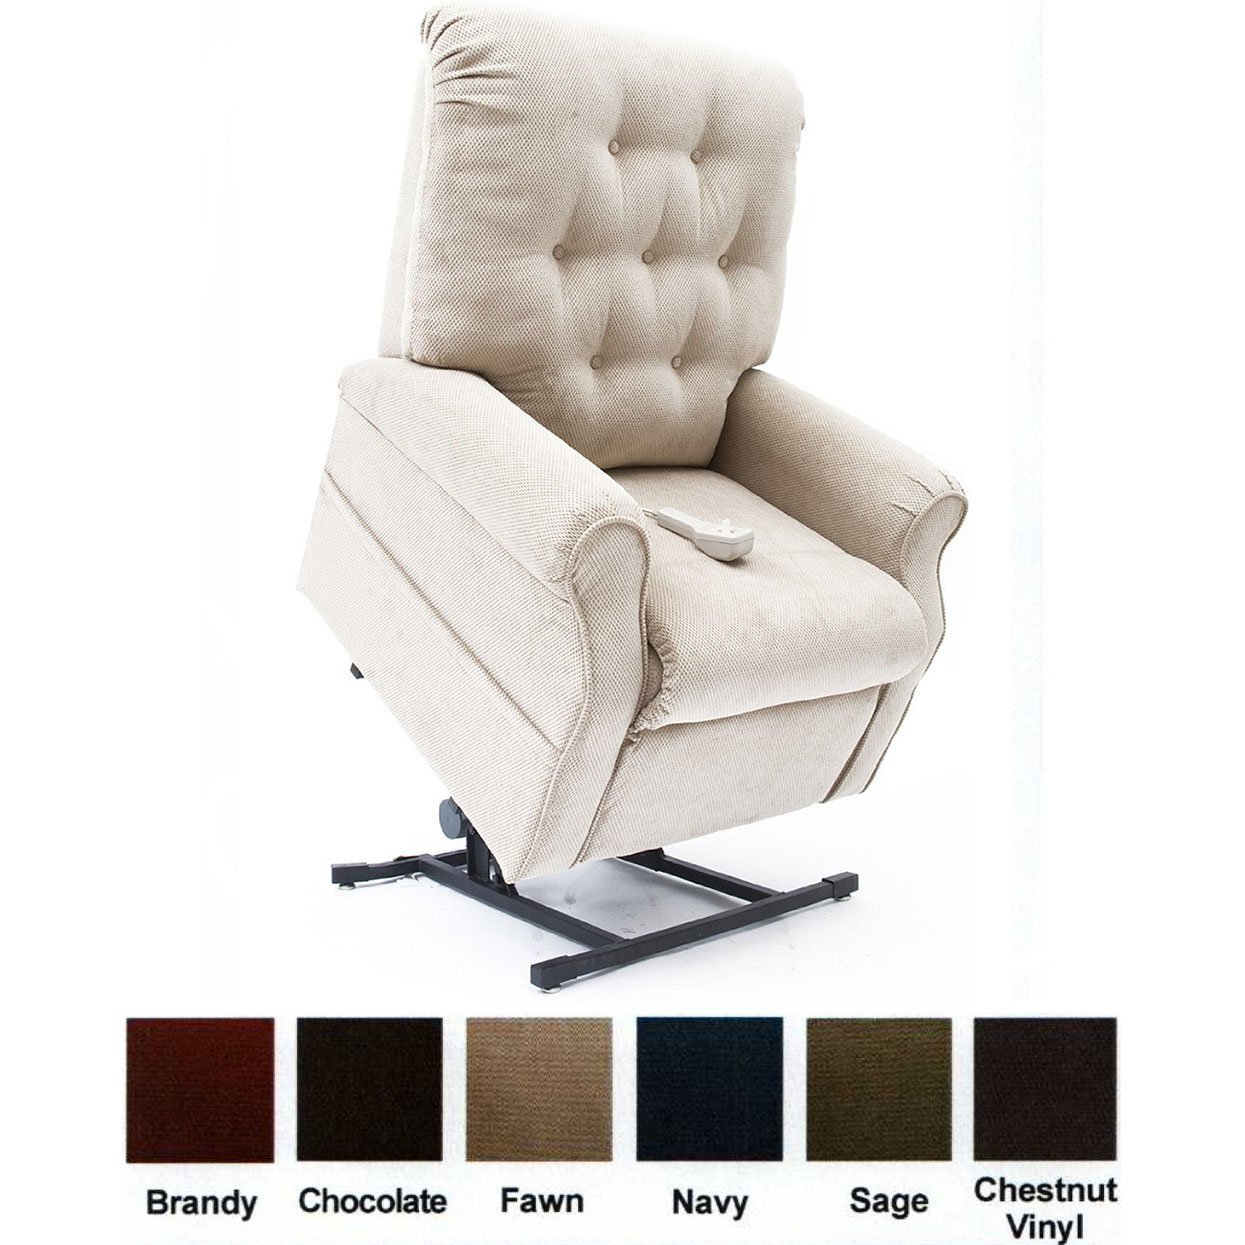 mega motion lift chairs reviews helicopter swing chair reviewing the best recliners for home use recliner